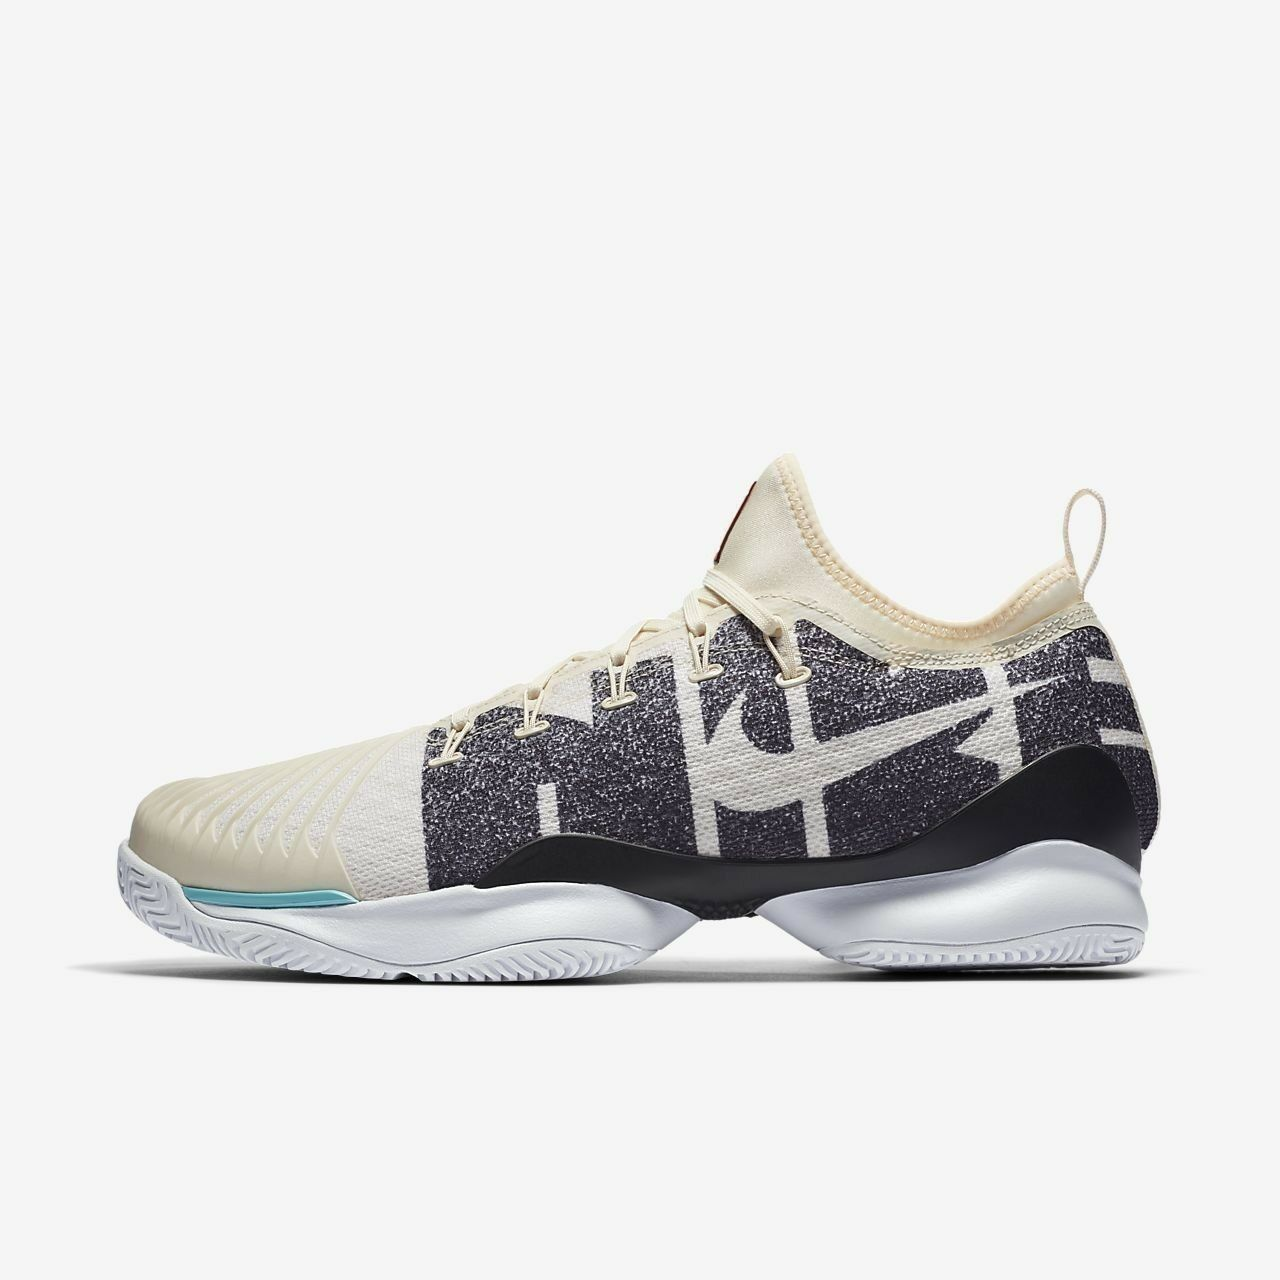 super popular 518ce b060d Nike NikeCourt Air Zoom Zoom Zoom Ultra React HC Tennis 859719-200 New  Men s shoes